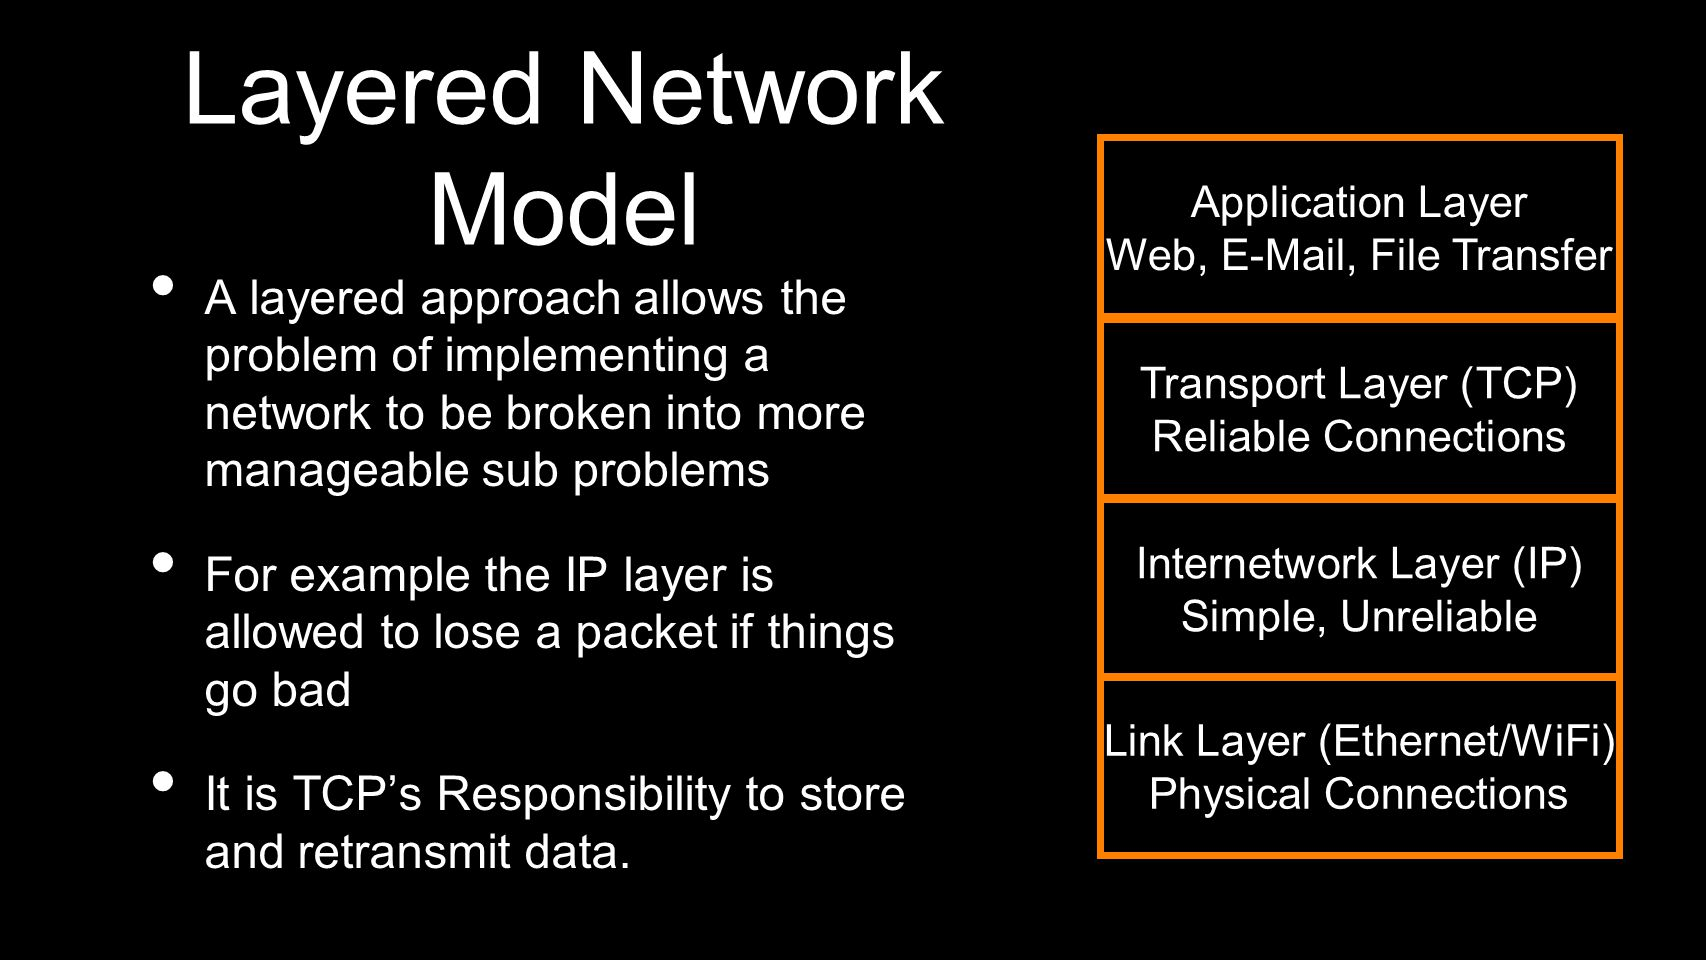 Layered Network Model A layered approach allows the problem of implementing a network to be broken into more manageable sub problems For example the I